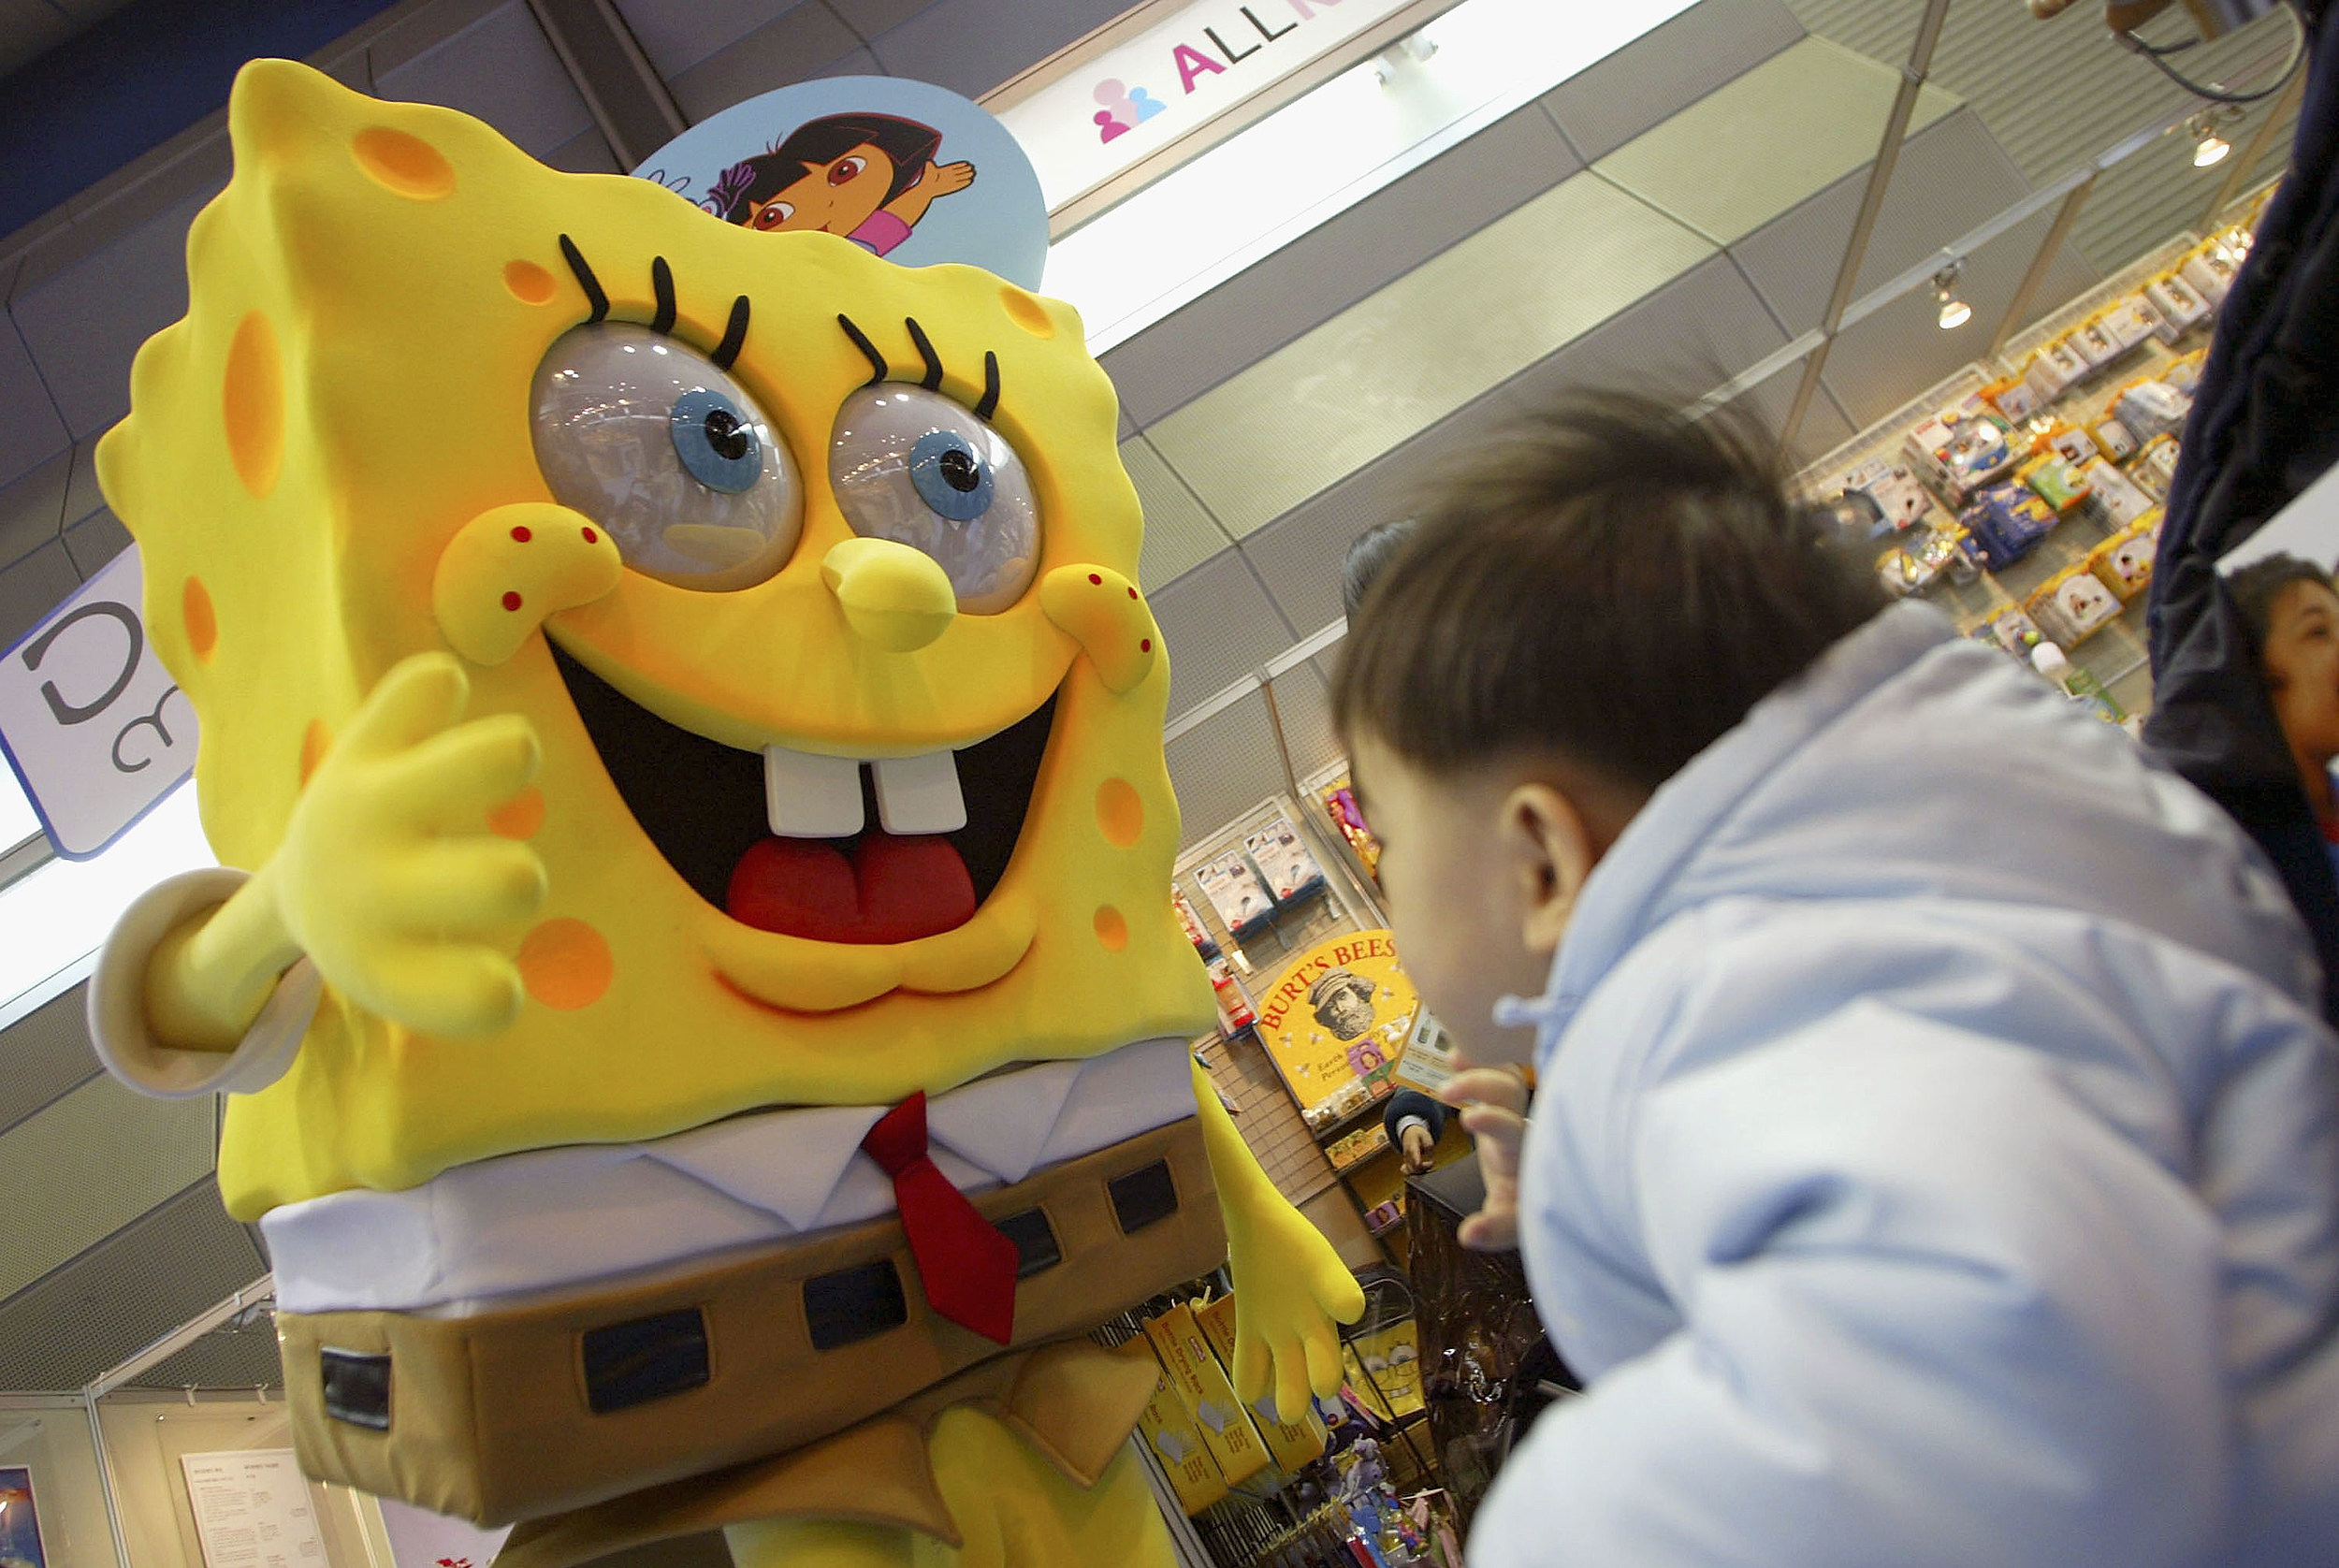 sponge bob square pants causing problems for 4 year olds video